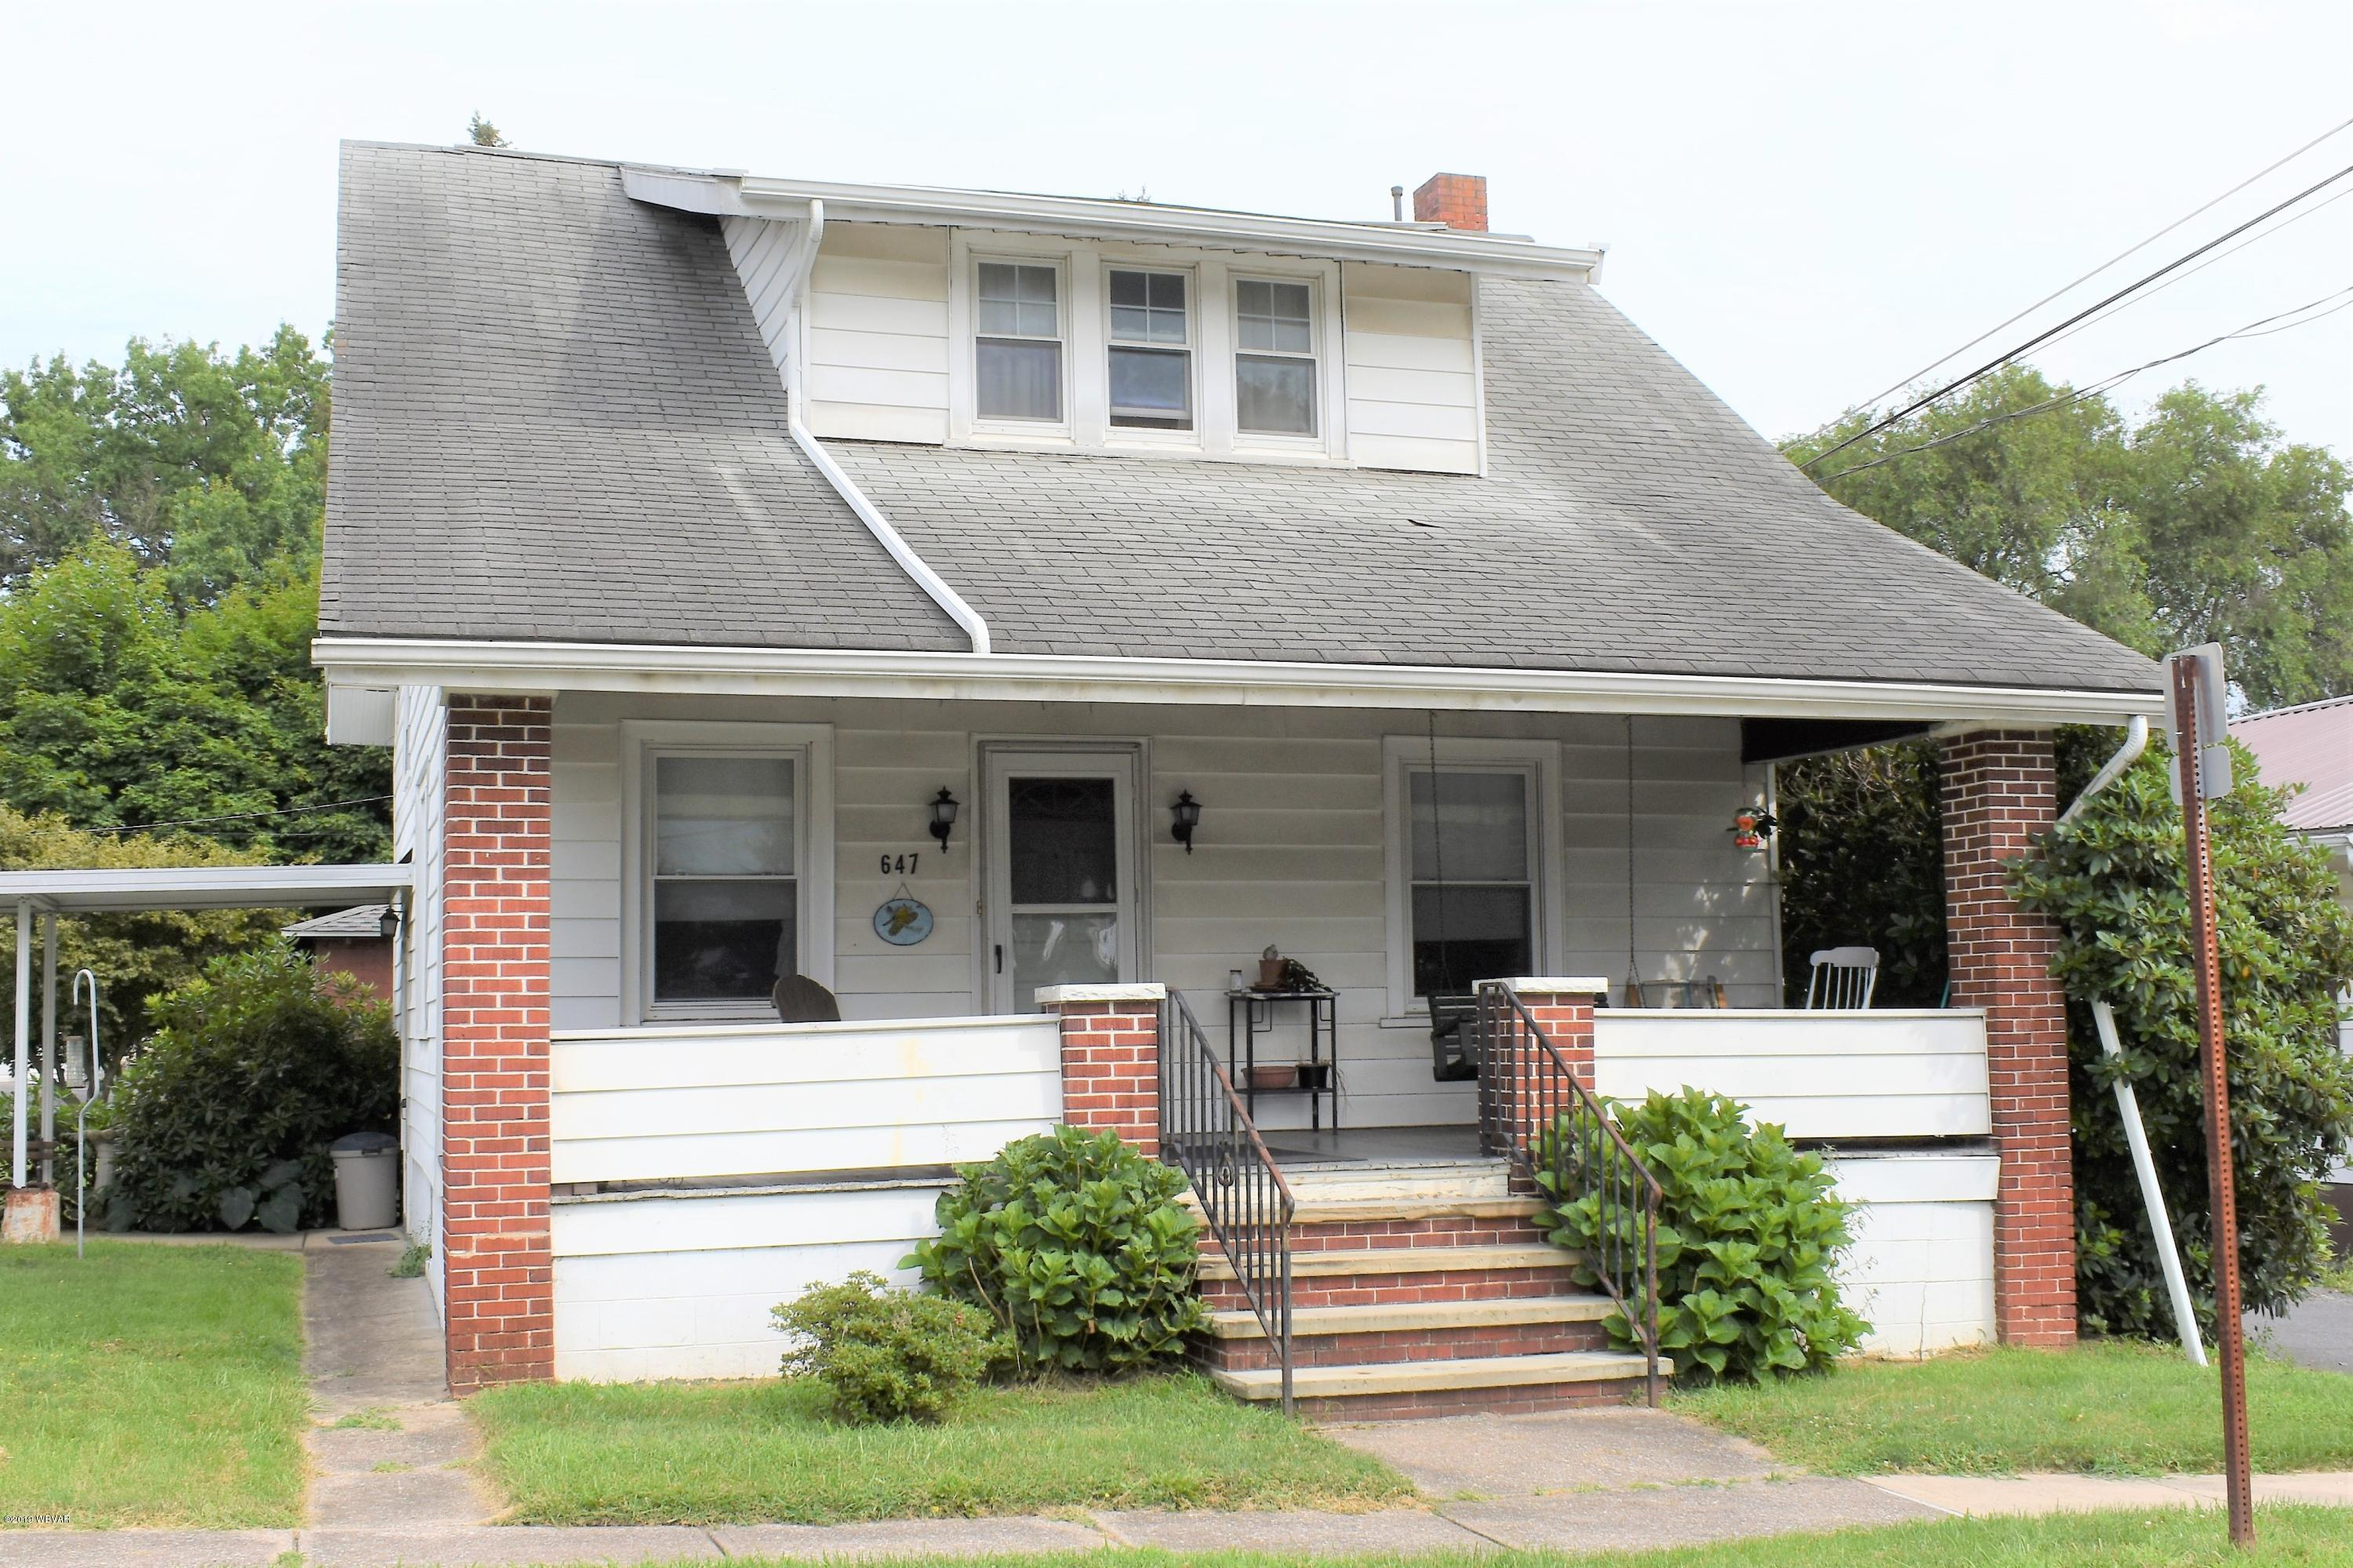 647 BALD EAGLE STREET, Lock Haven, PA 17745, 2 Bedrooms Bedrooms, ,2 BathroomsBathrooms,Residential,For sale,BALD EAGLE,WB-88107